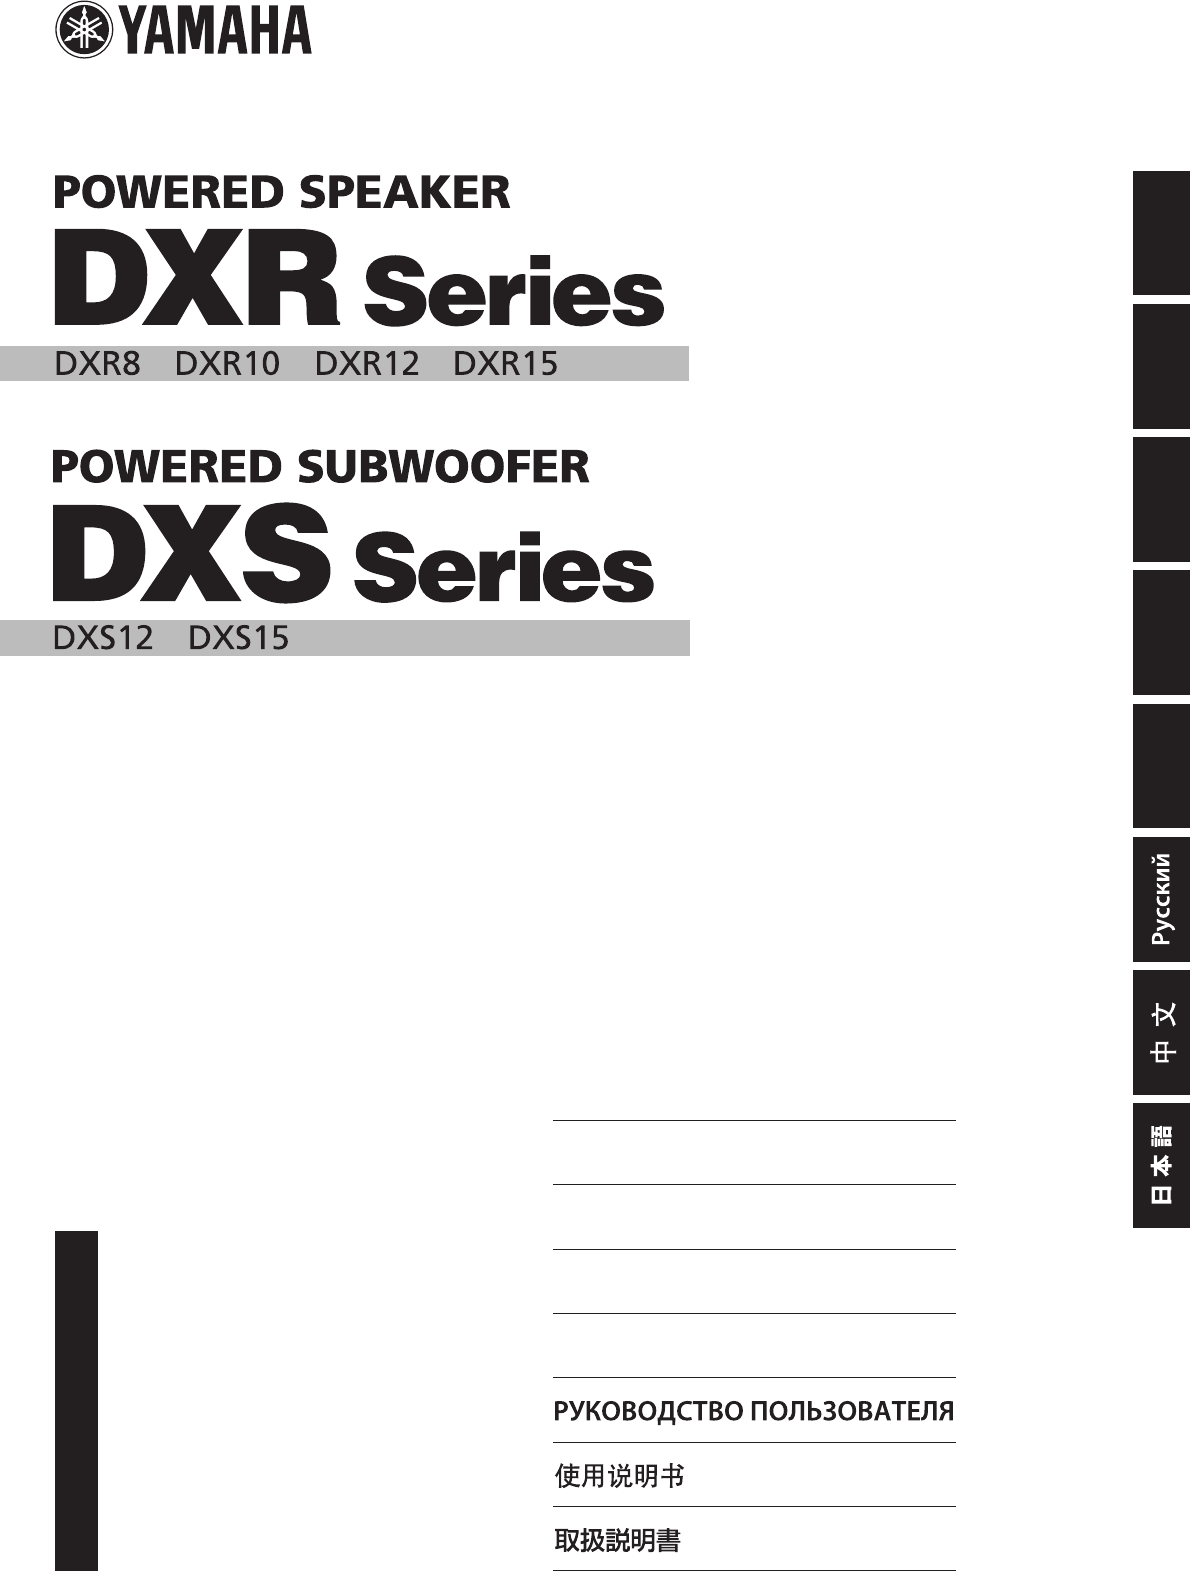 📖 User manual Yamaha DXR12 (22 pages)